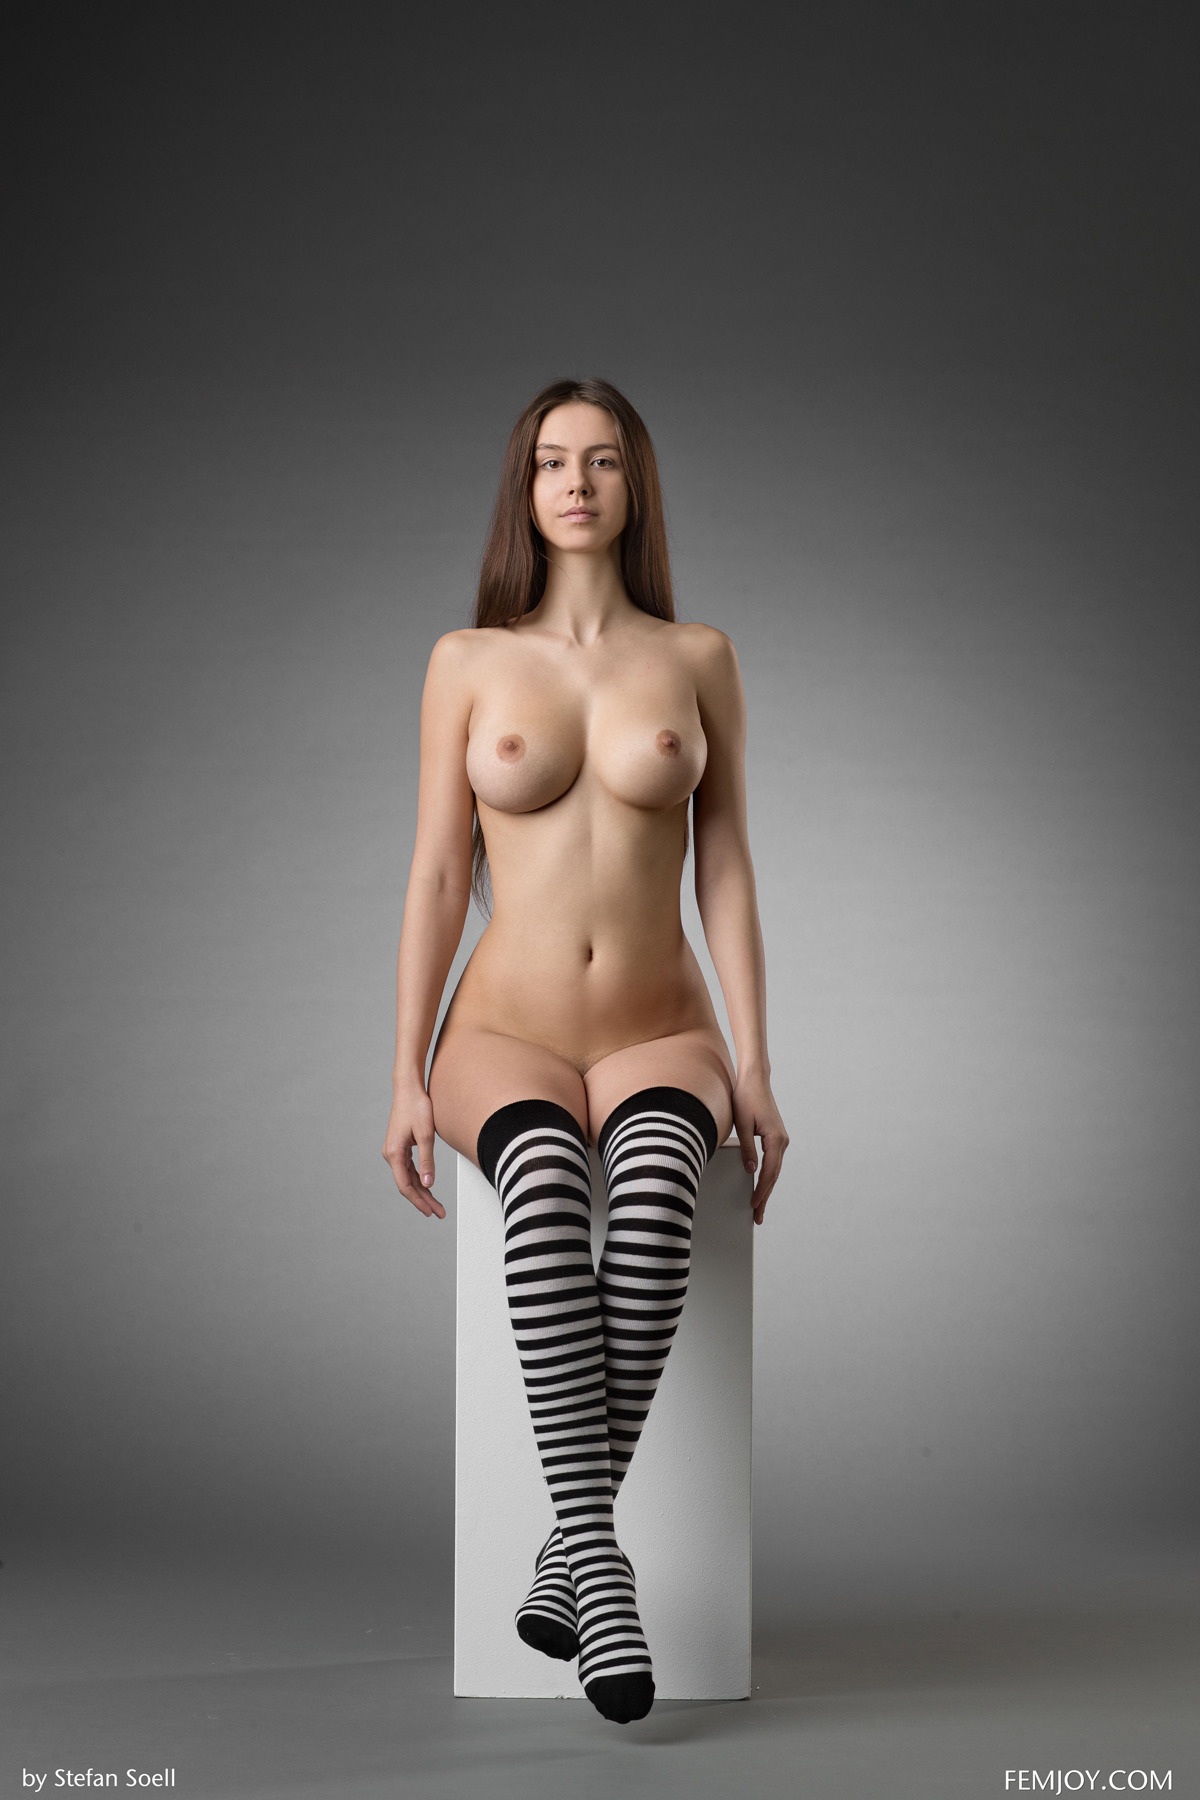 PHOTO   00 85 - Busty Alisa I in Striped Stockings